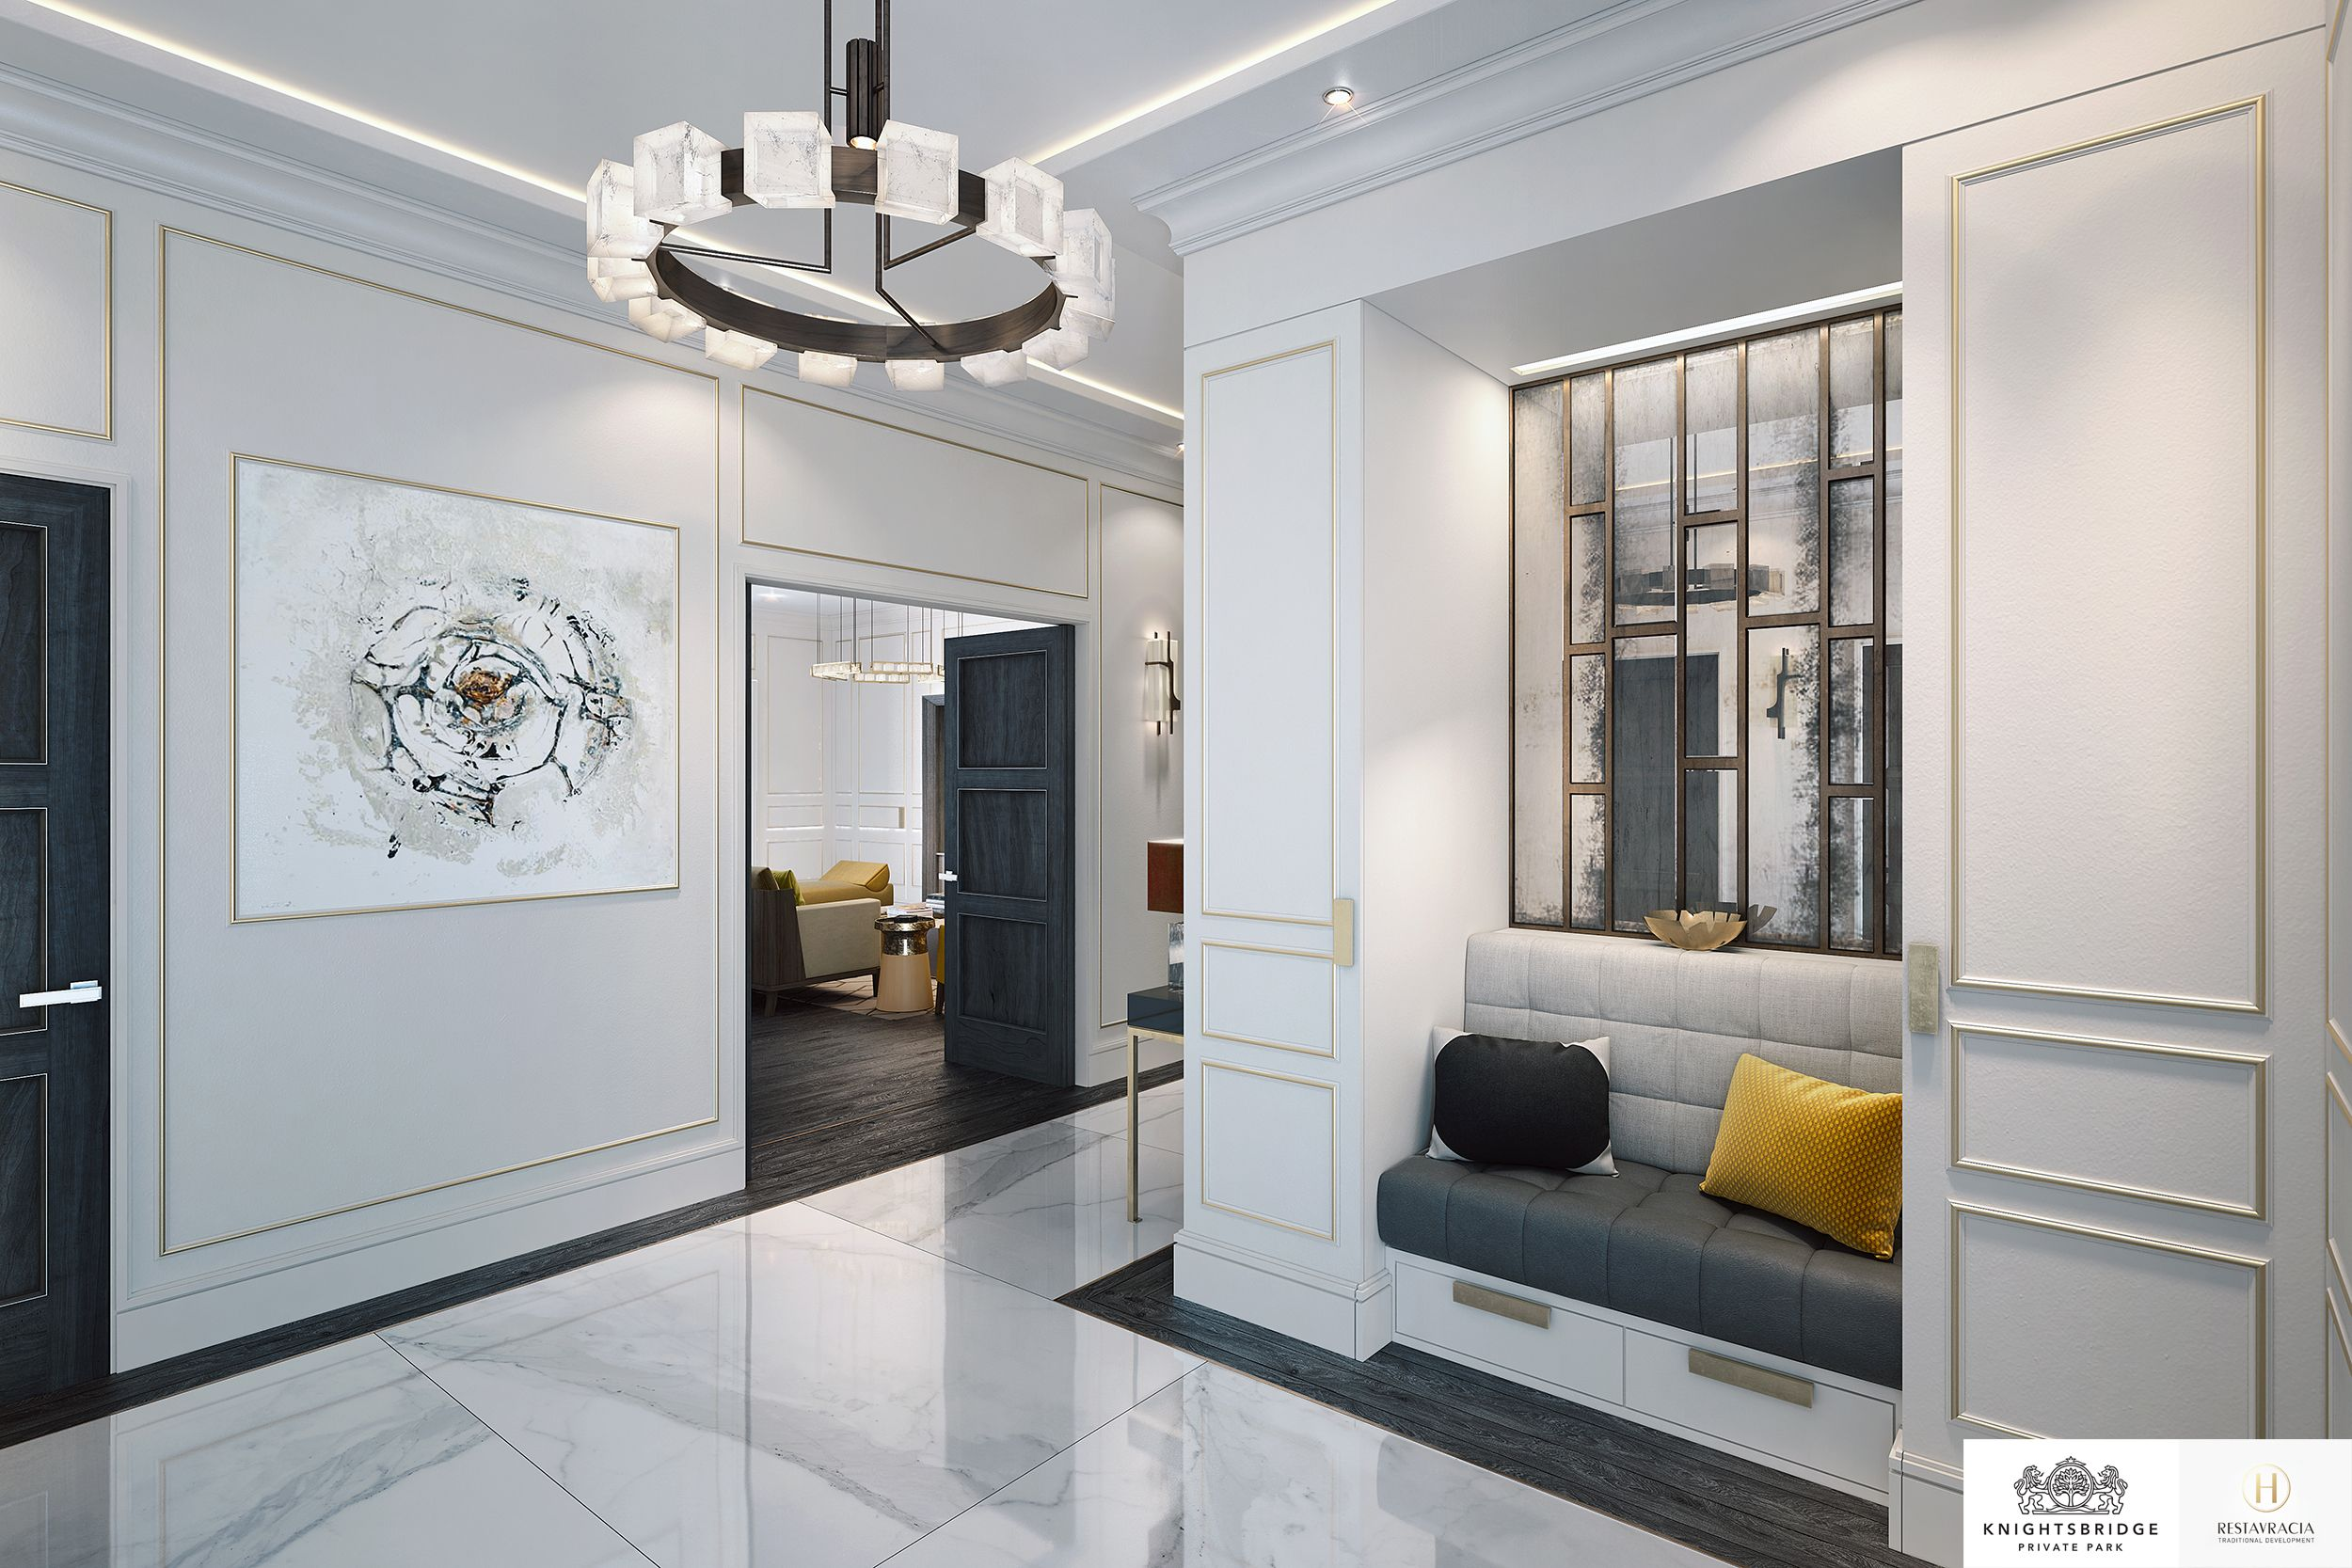 Creation of the interior design for the entrance hall